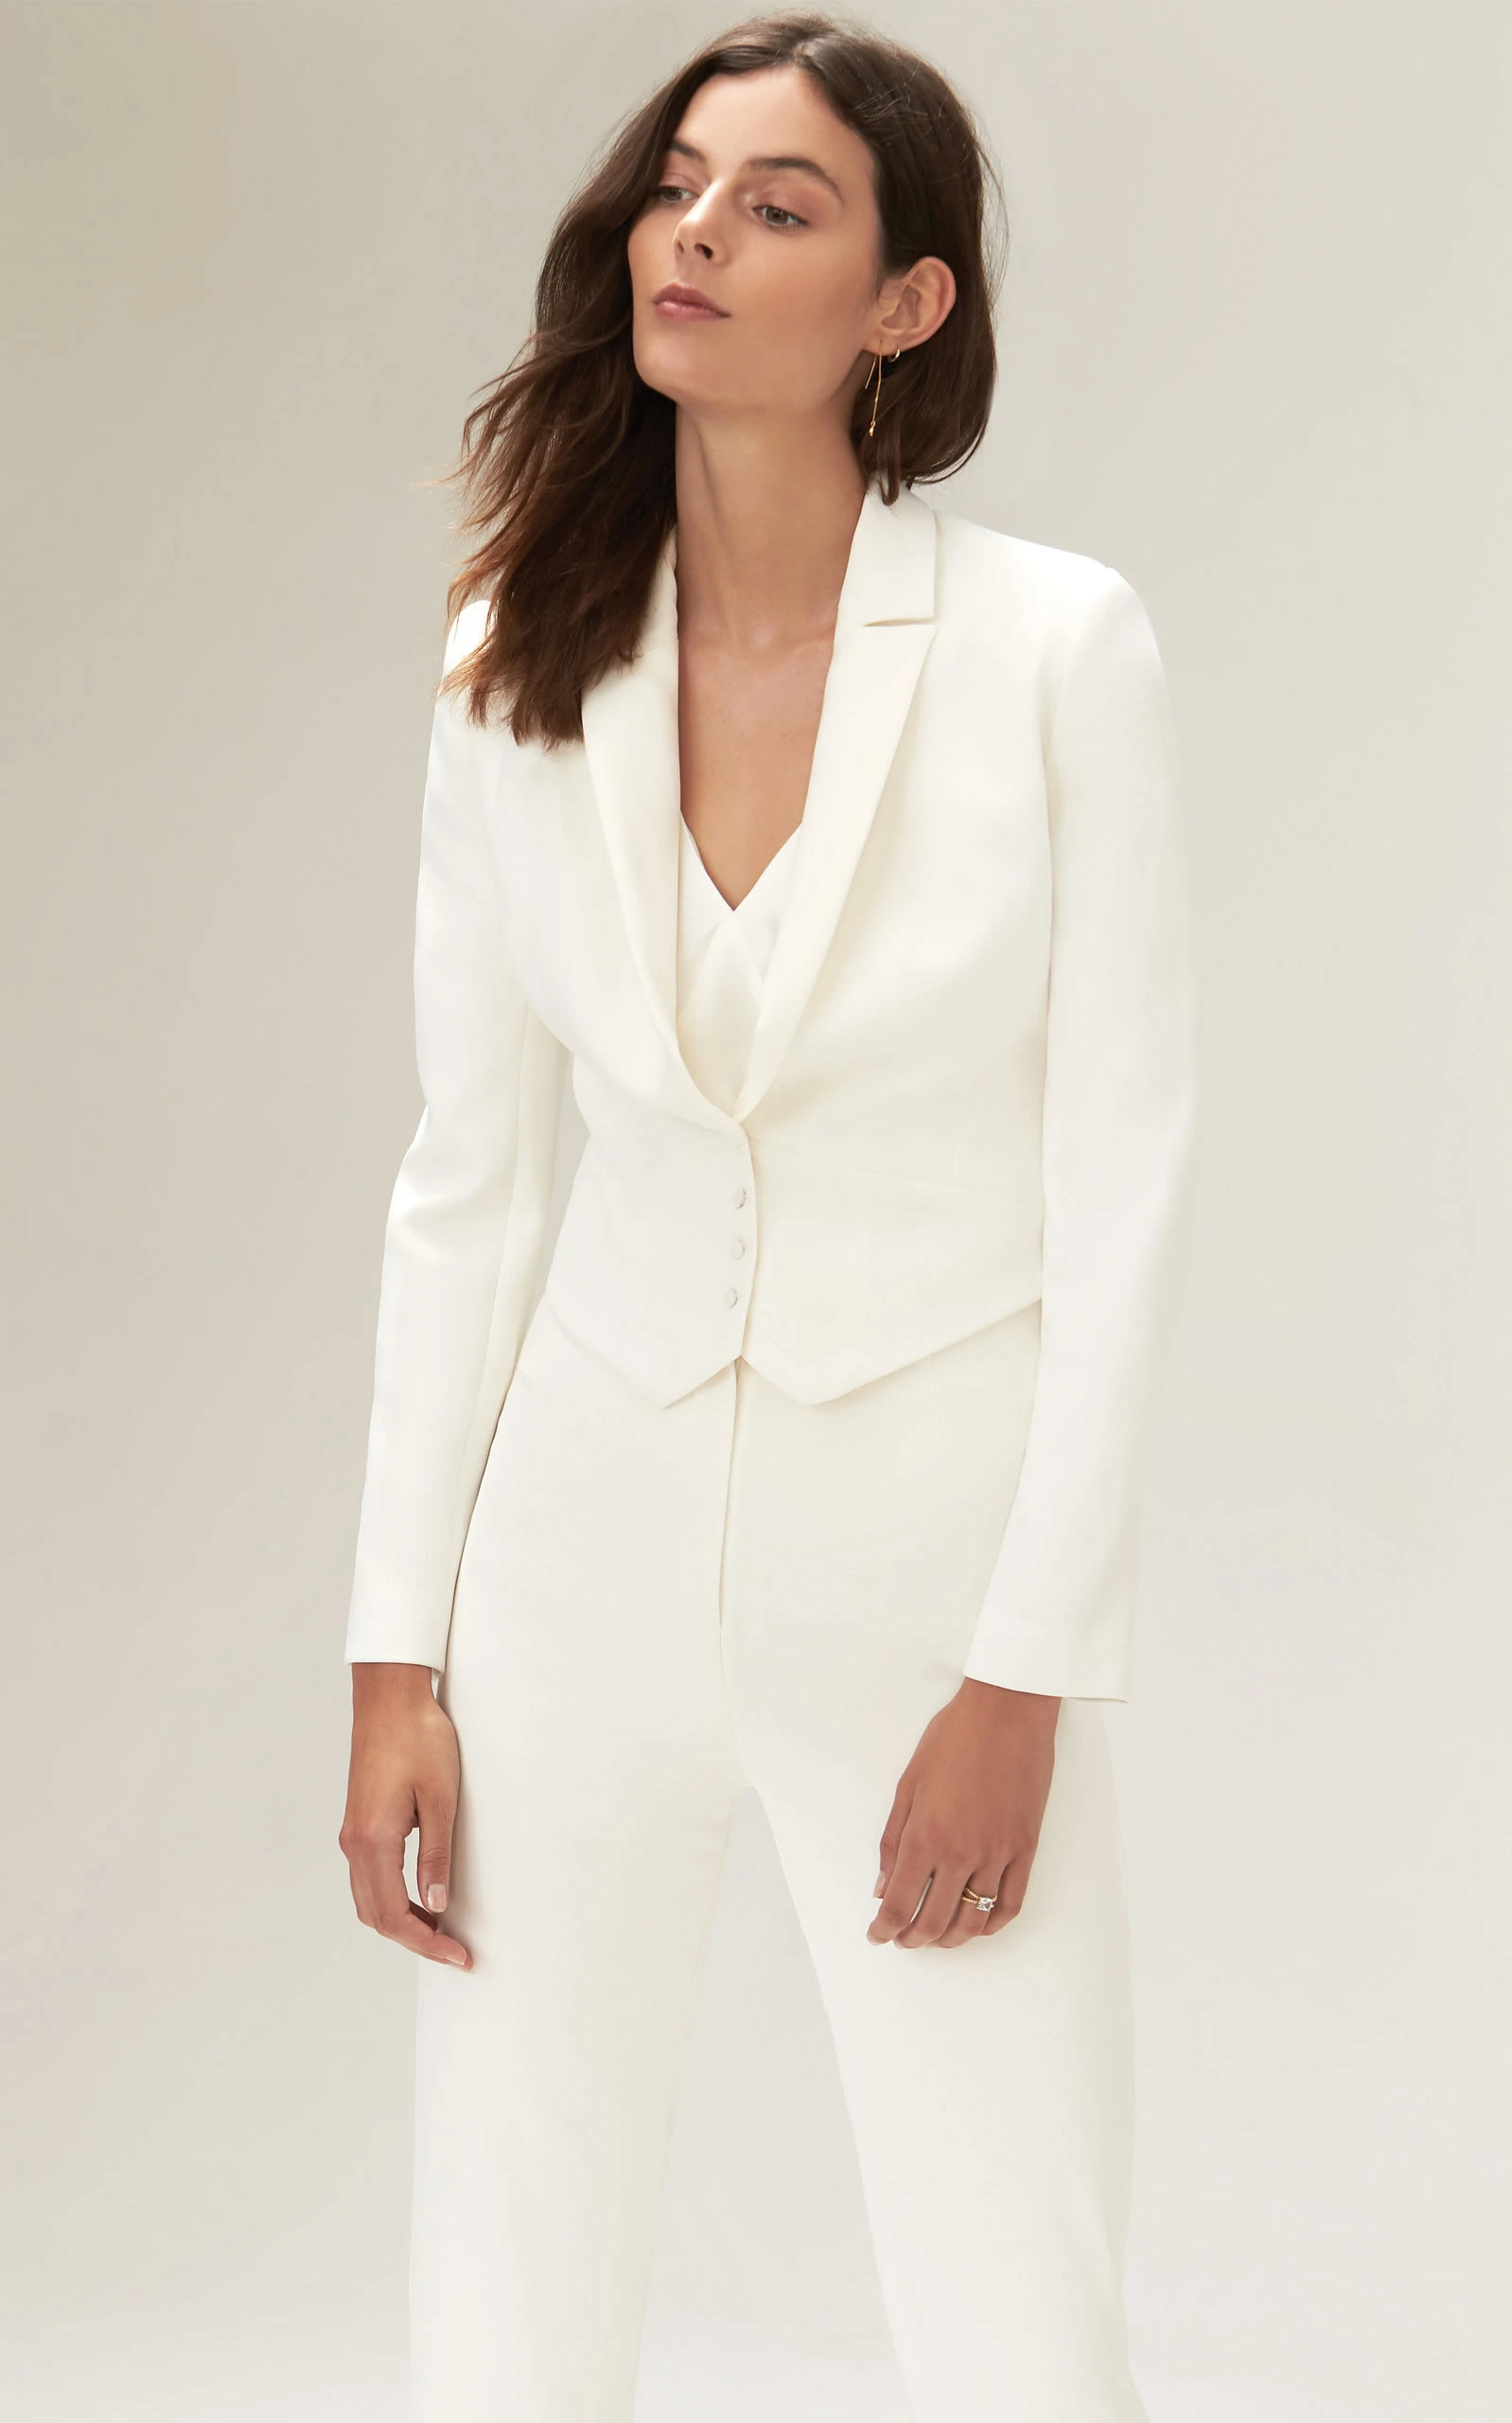 Savannah Miller - Eve Cropped Jacket With Satin Lapels And Detachable Skirt